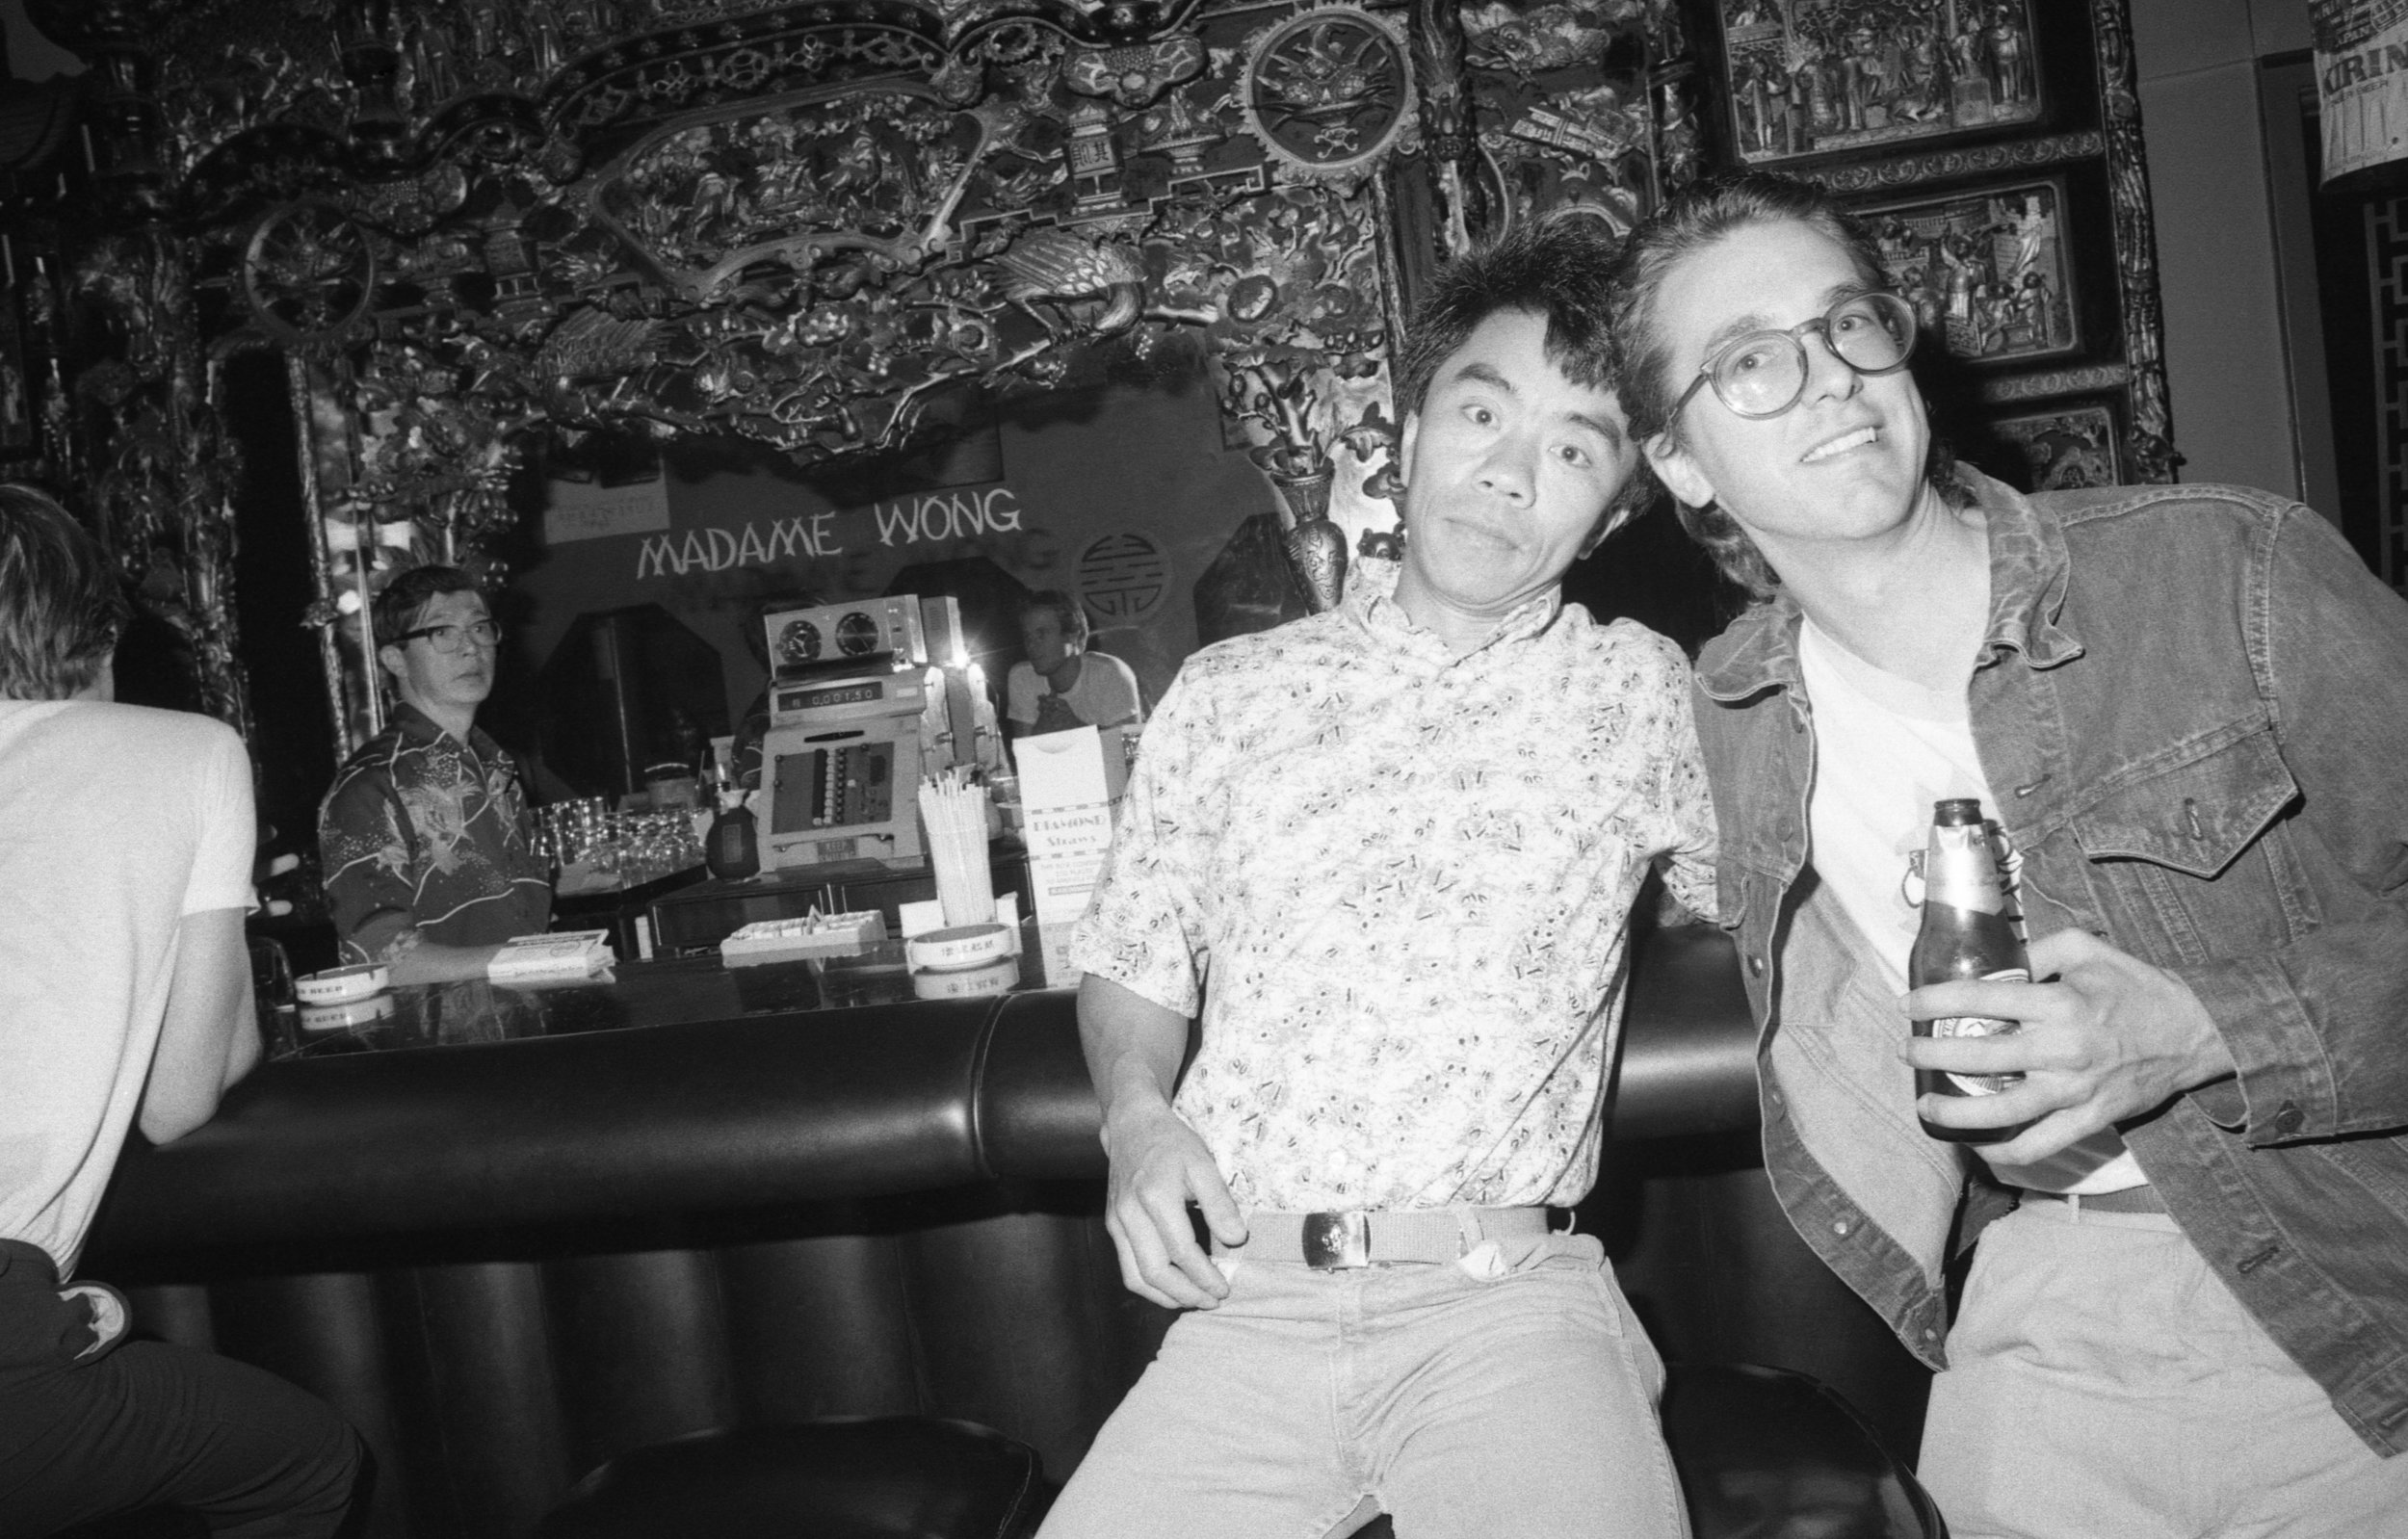 Madame Wong's, Hisao and Tom at the bar. Los Angeles, 1981.